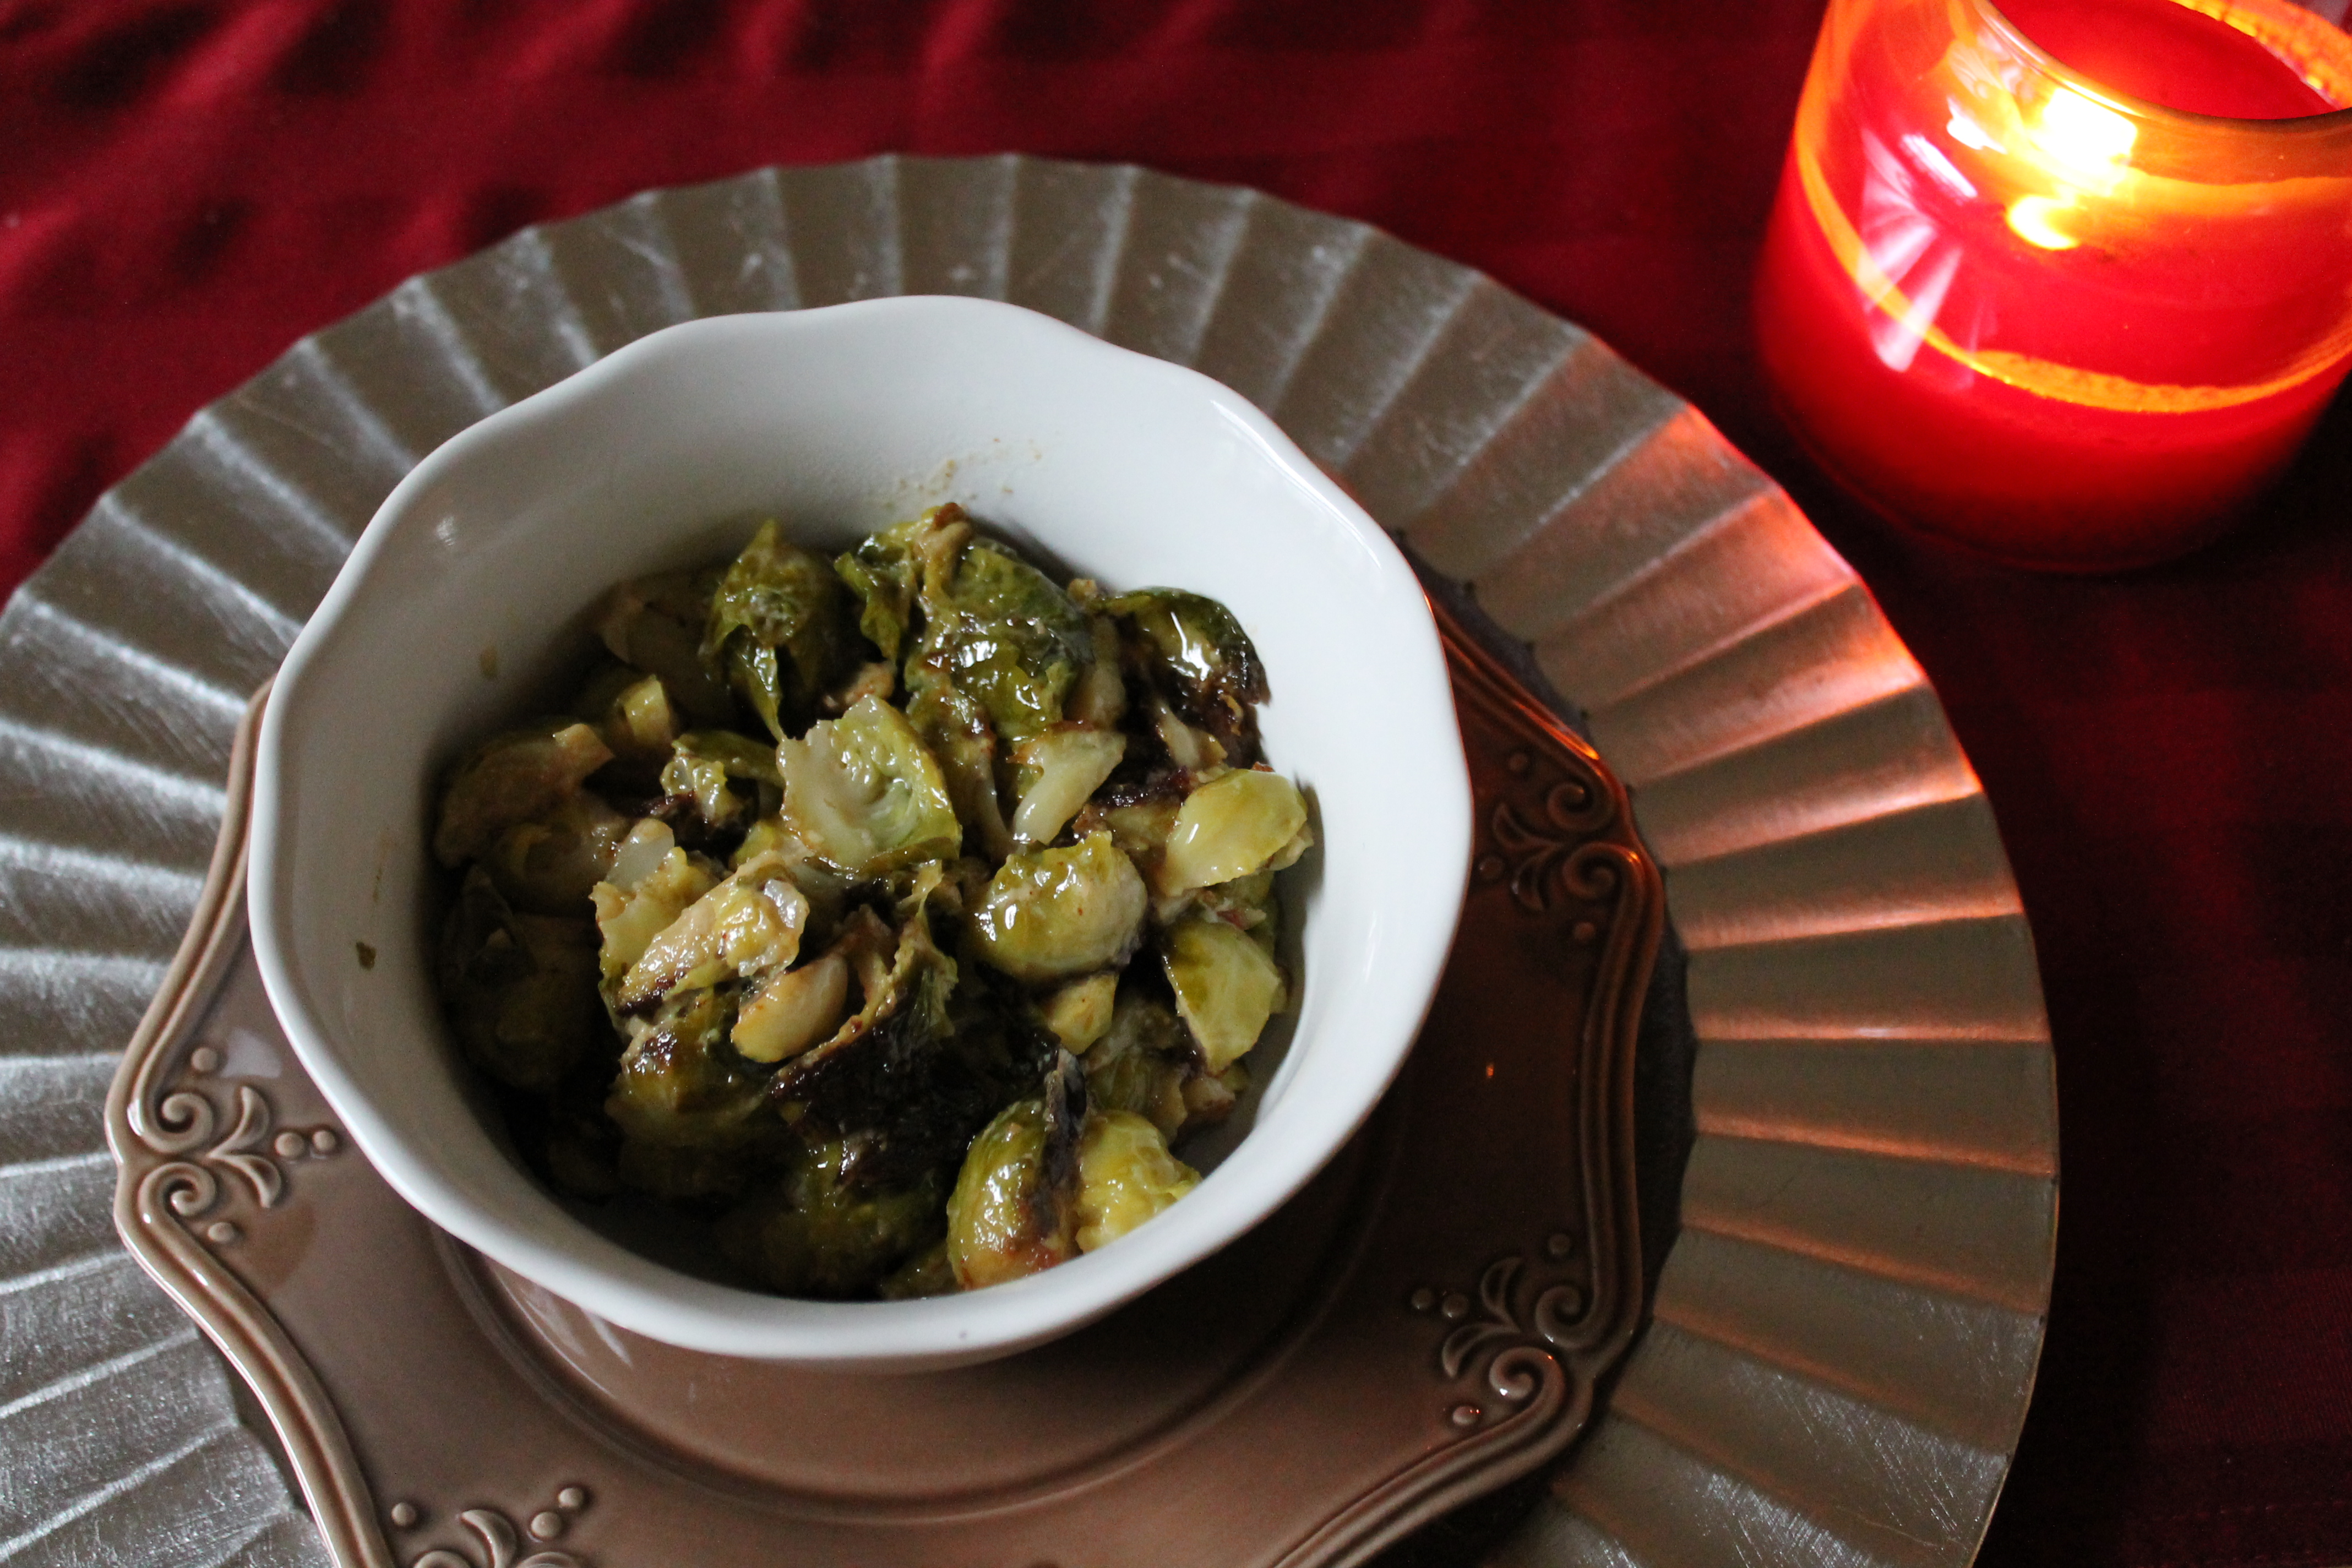 Super Delicious Brussels Sprouts